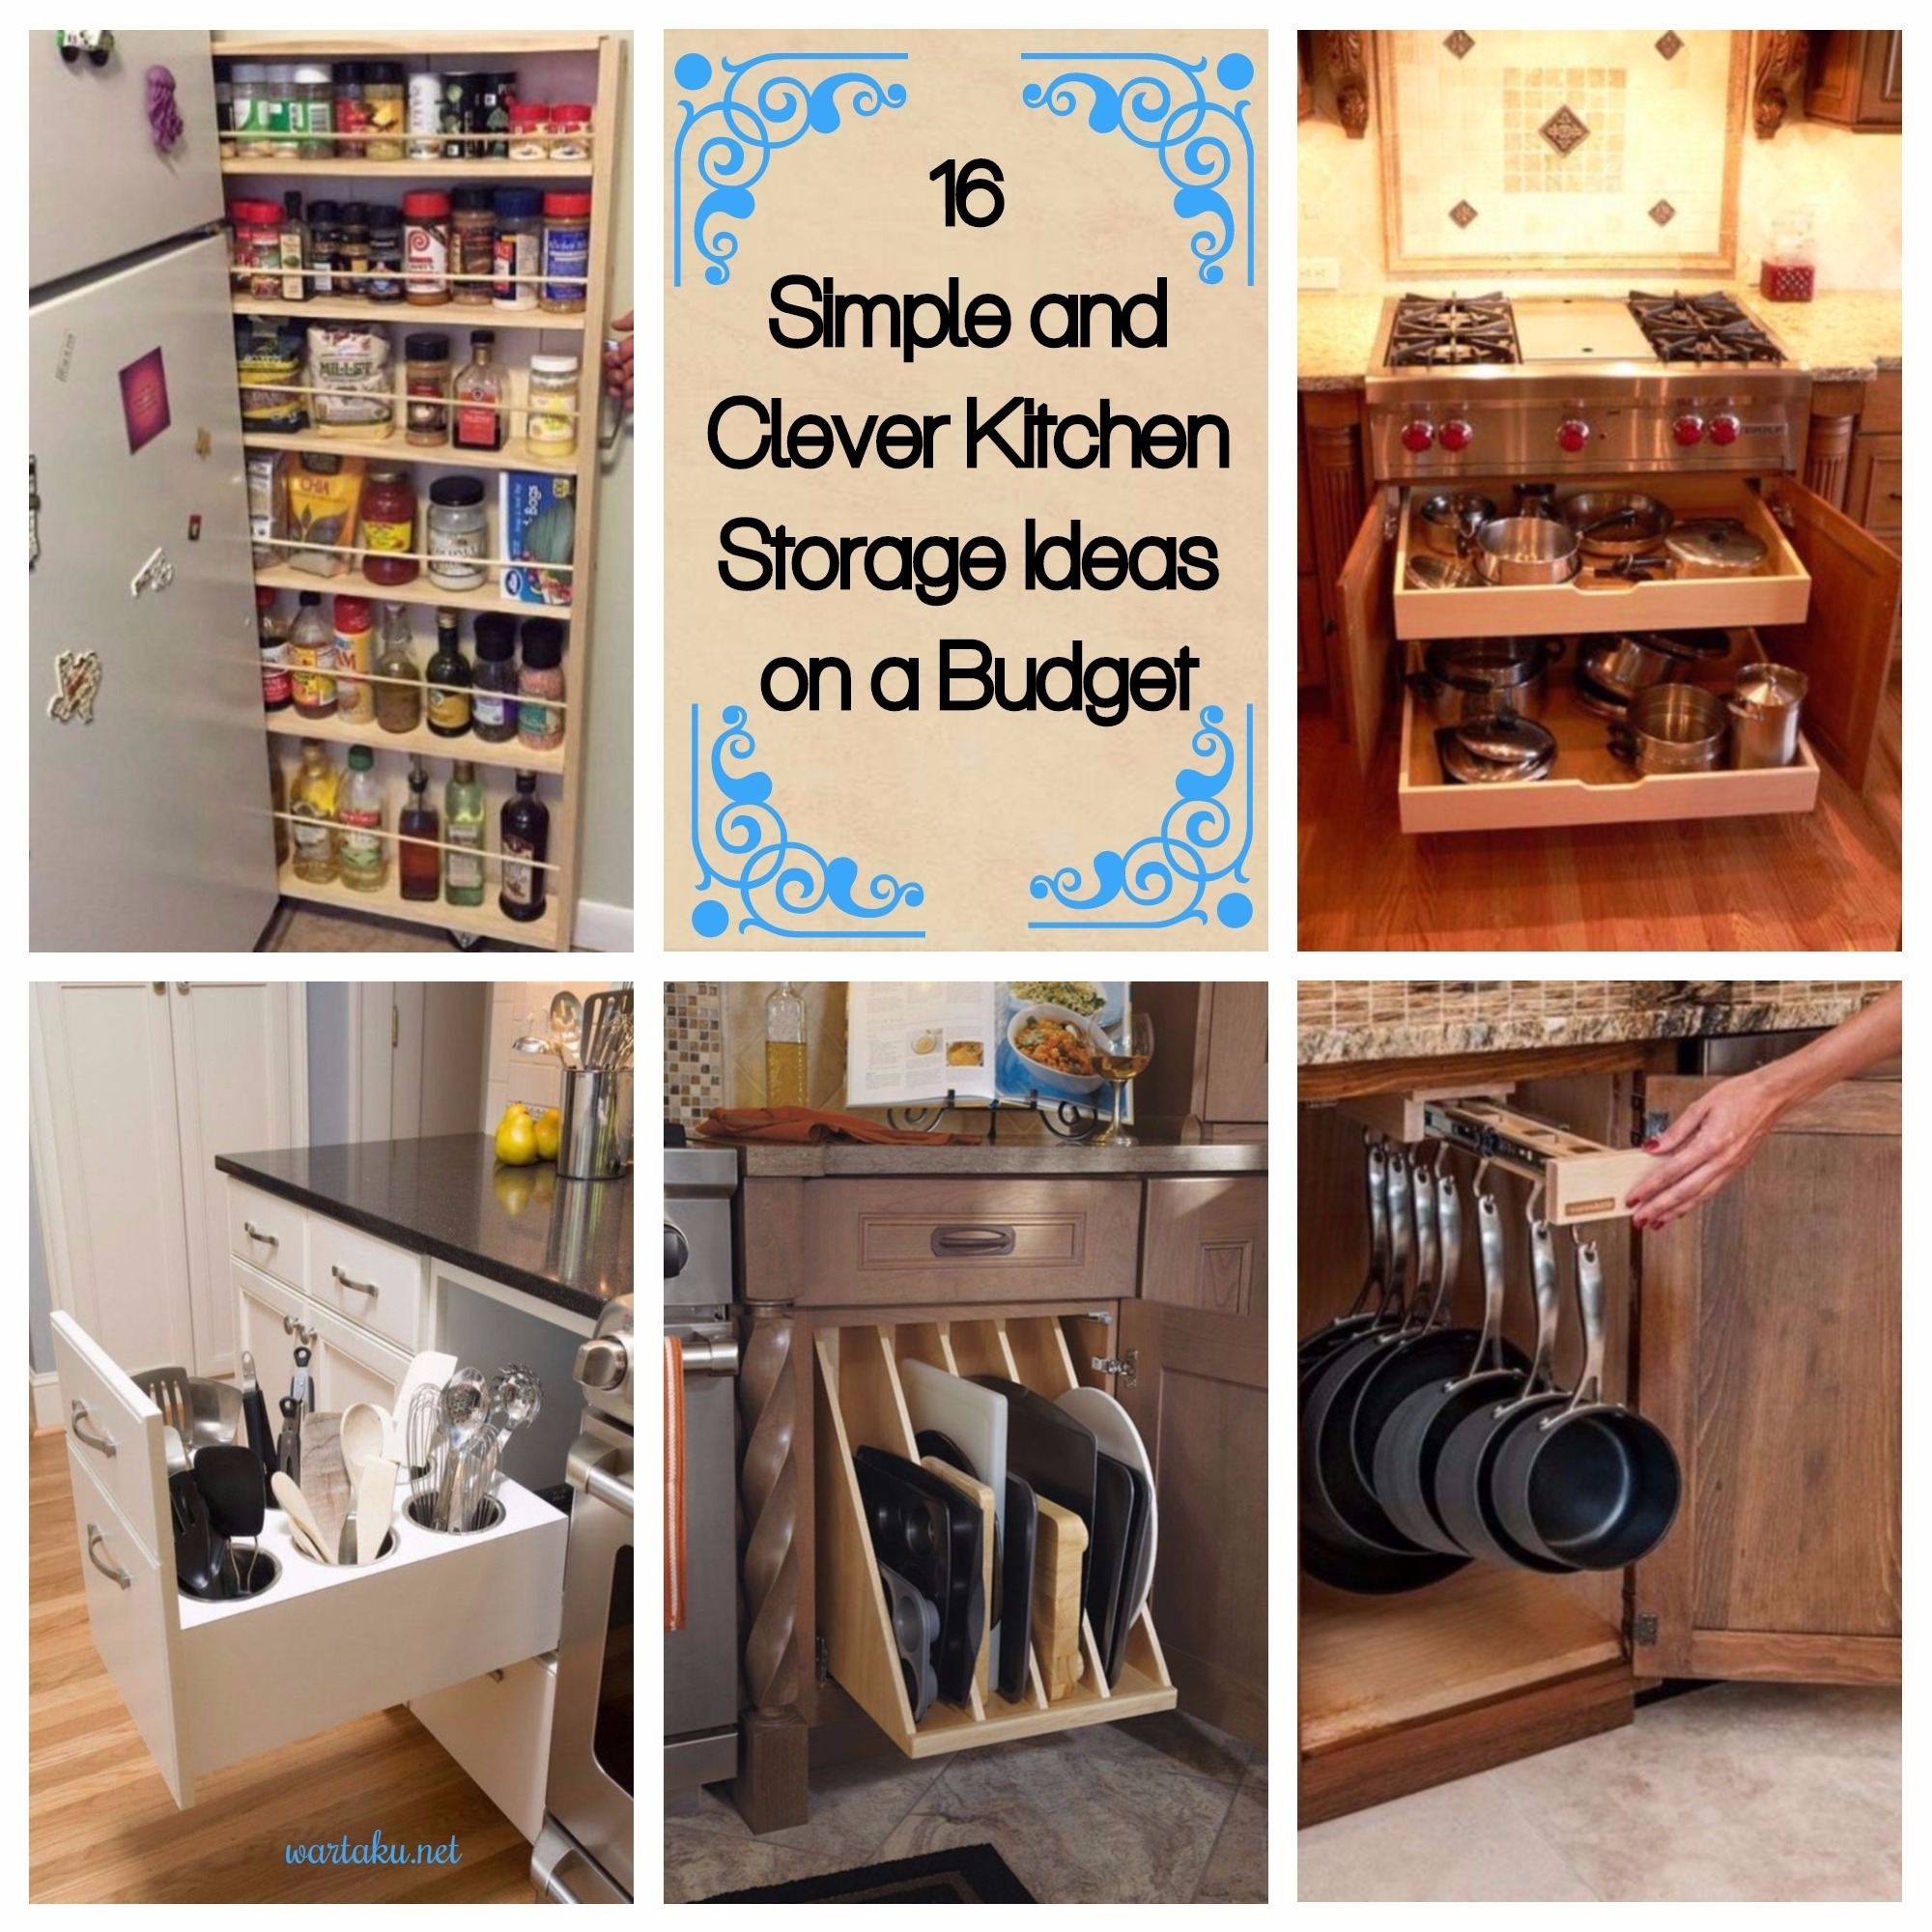 16 simple and clever kitchen storage ideas on a budget wartaku